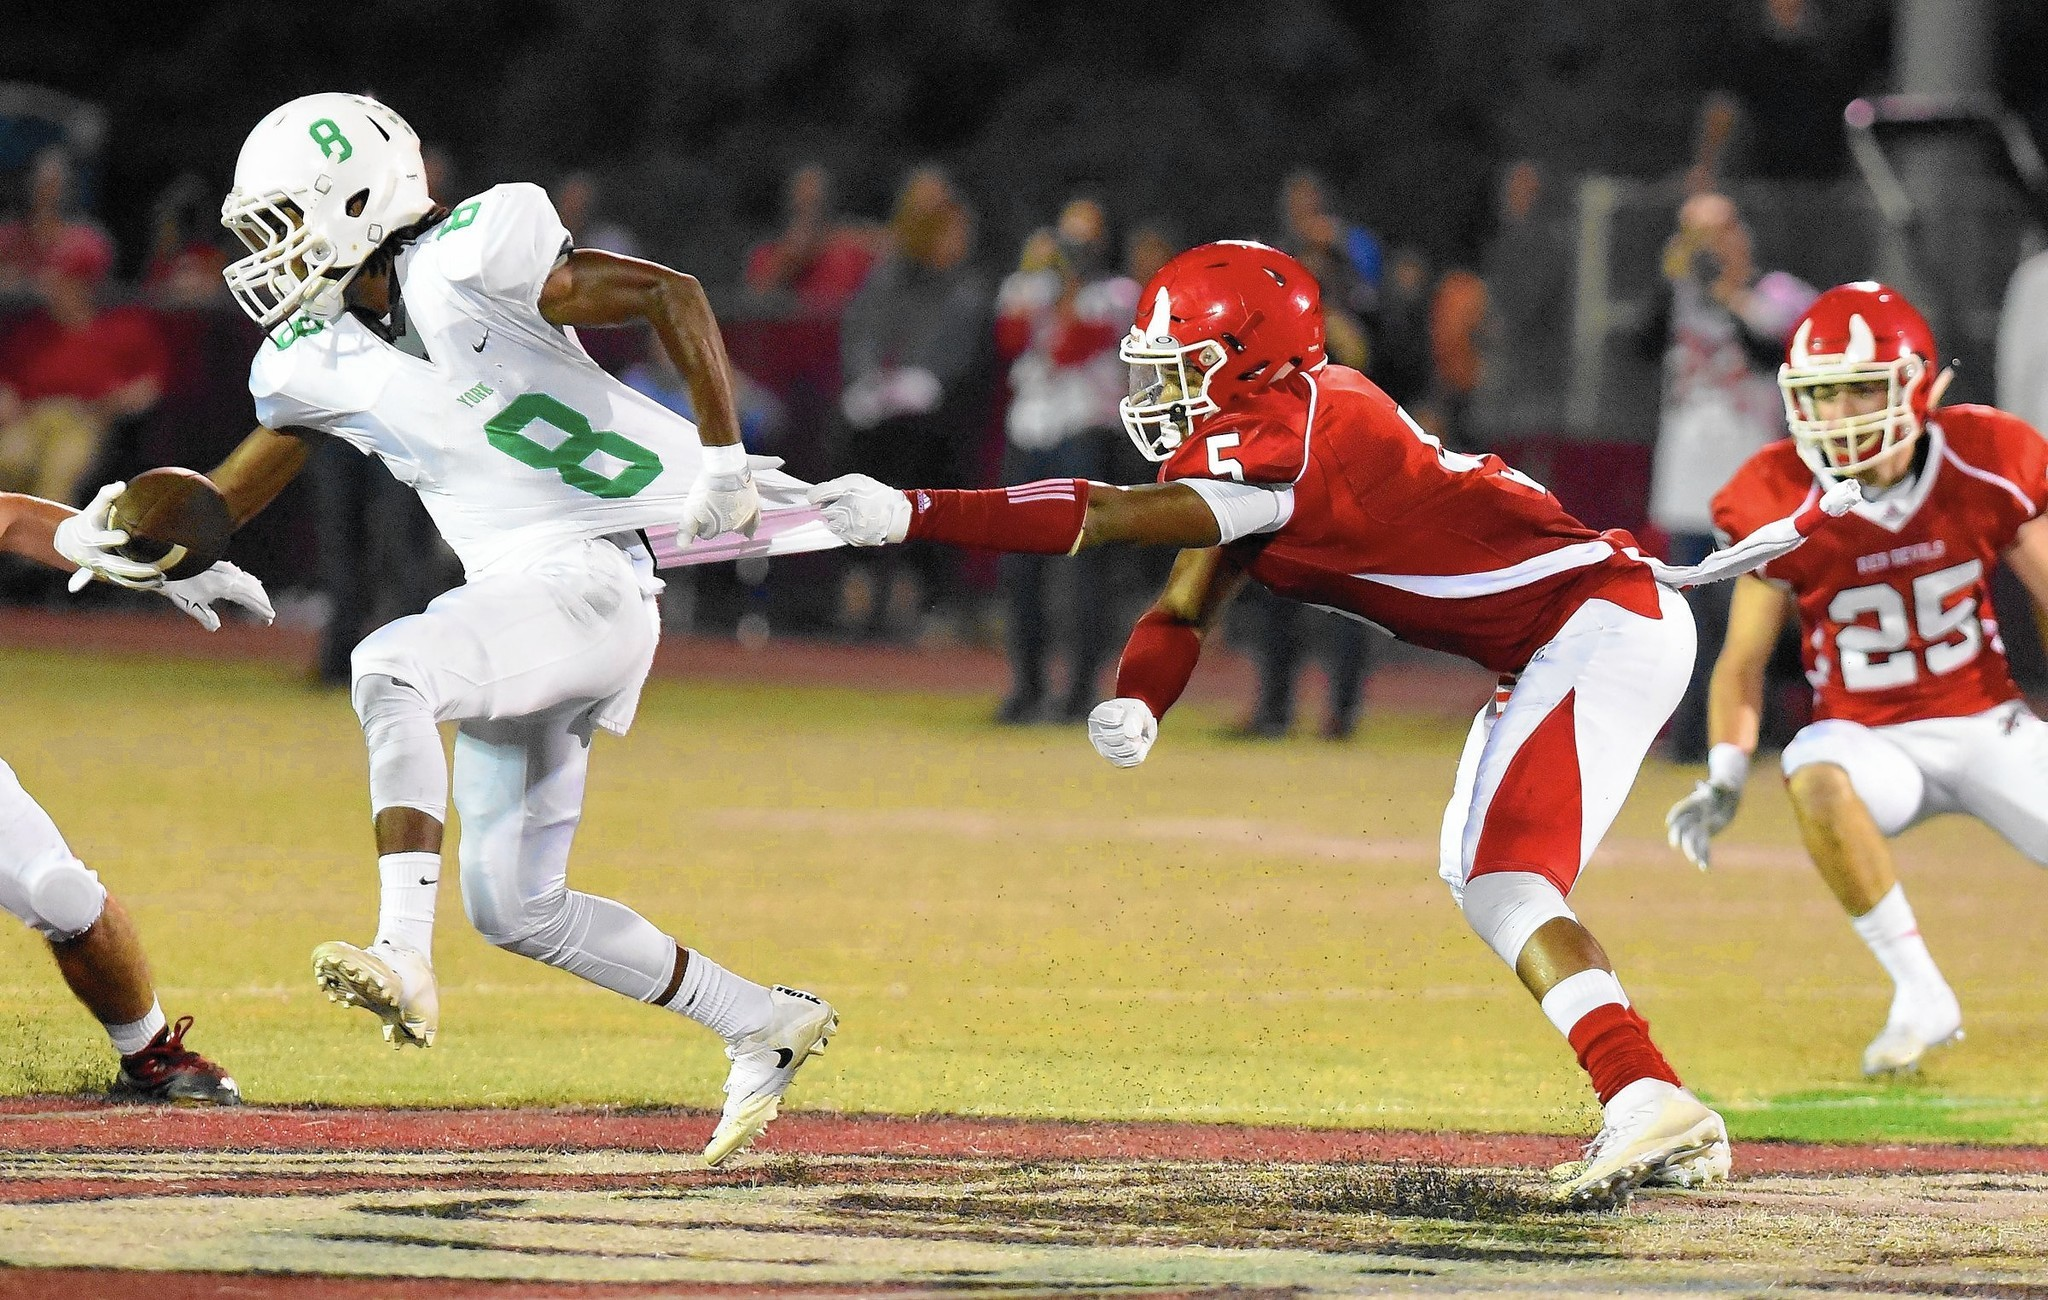 Hinsdale Central S Defense Leads To Offense In Victory Over York